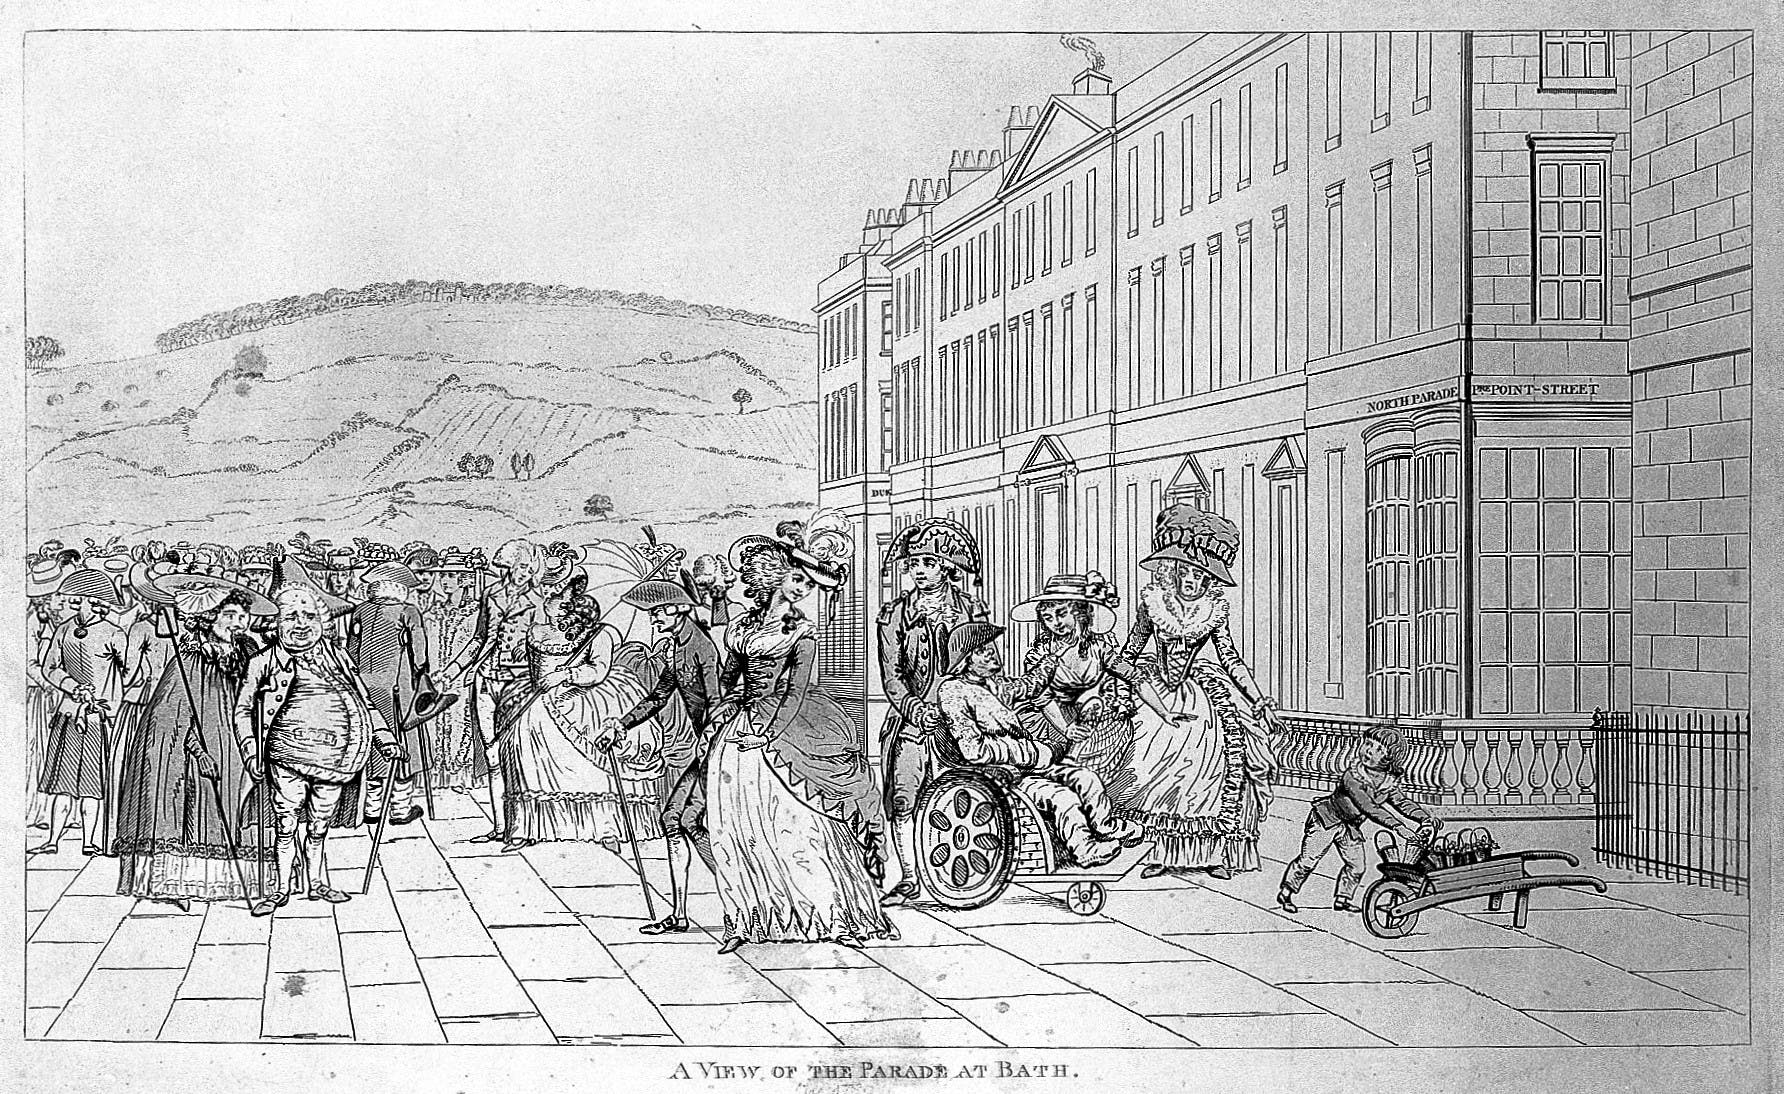 People are depicted strolling along the parade in Bath, wearing fine dress. The image is accompanied by the following caption: